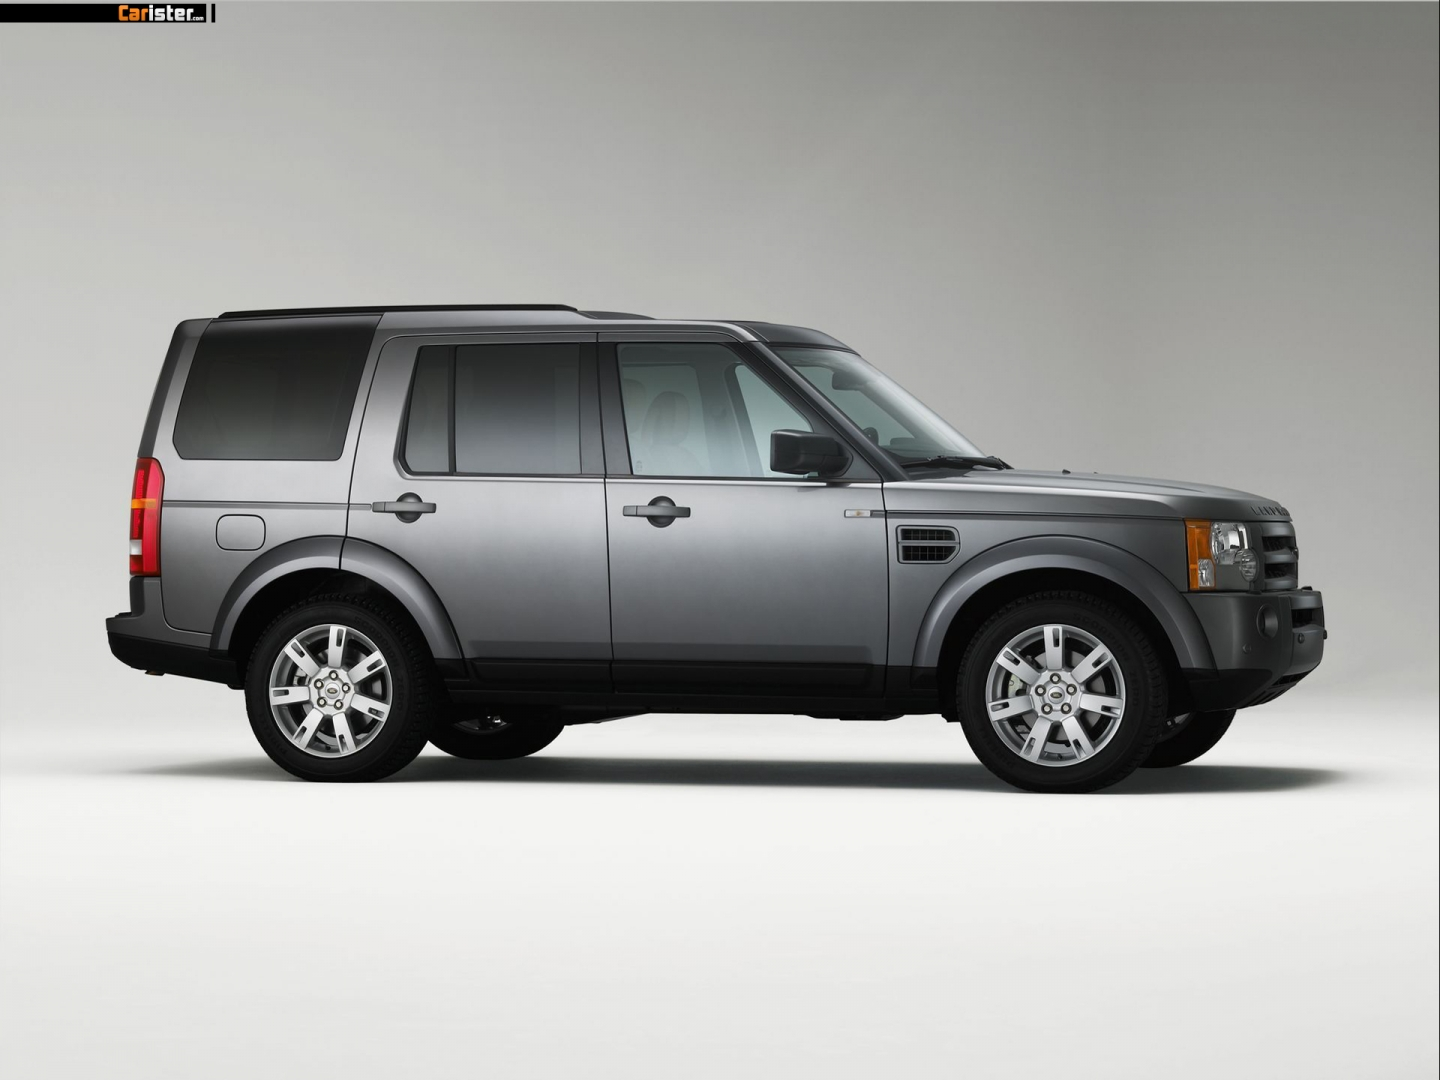 Land Rover Discovery 3 2009 - Photo 16 - Taille: 1440x1080